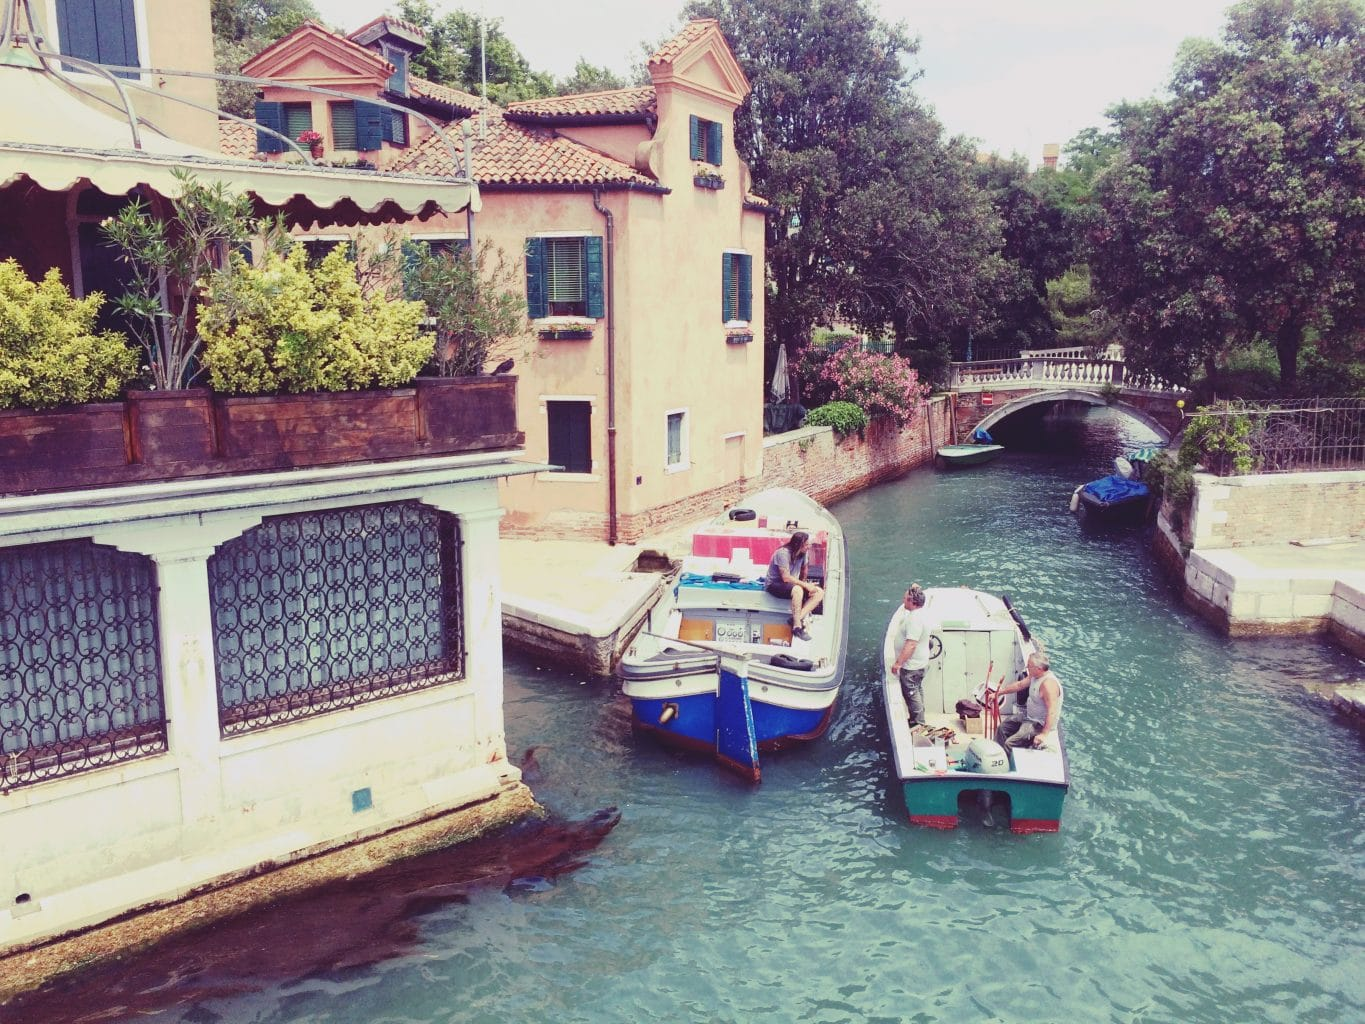 Me and Venice: A Work in Progress